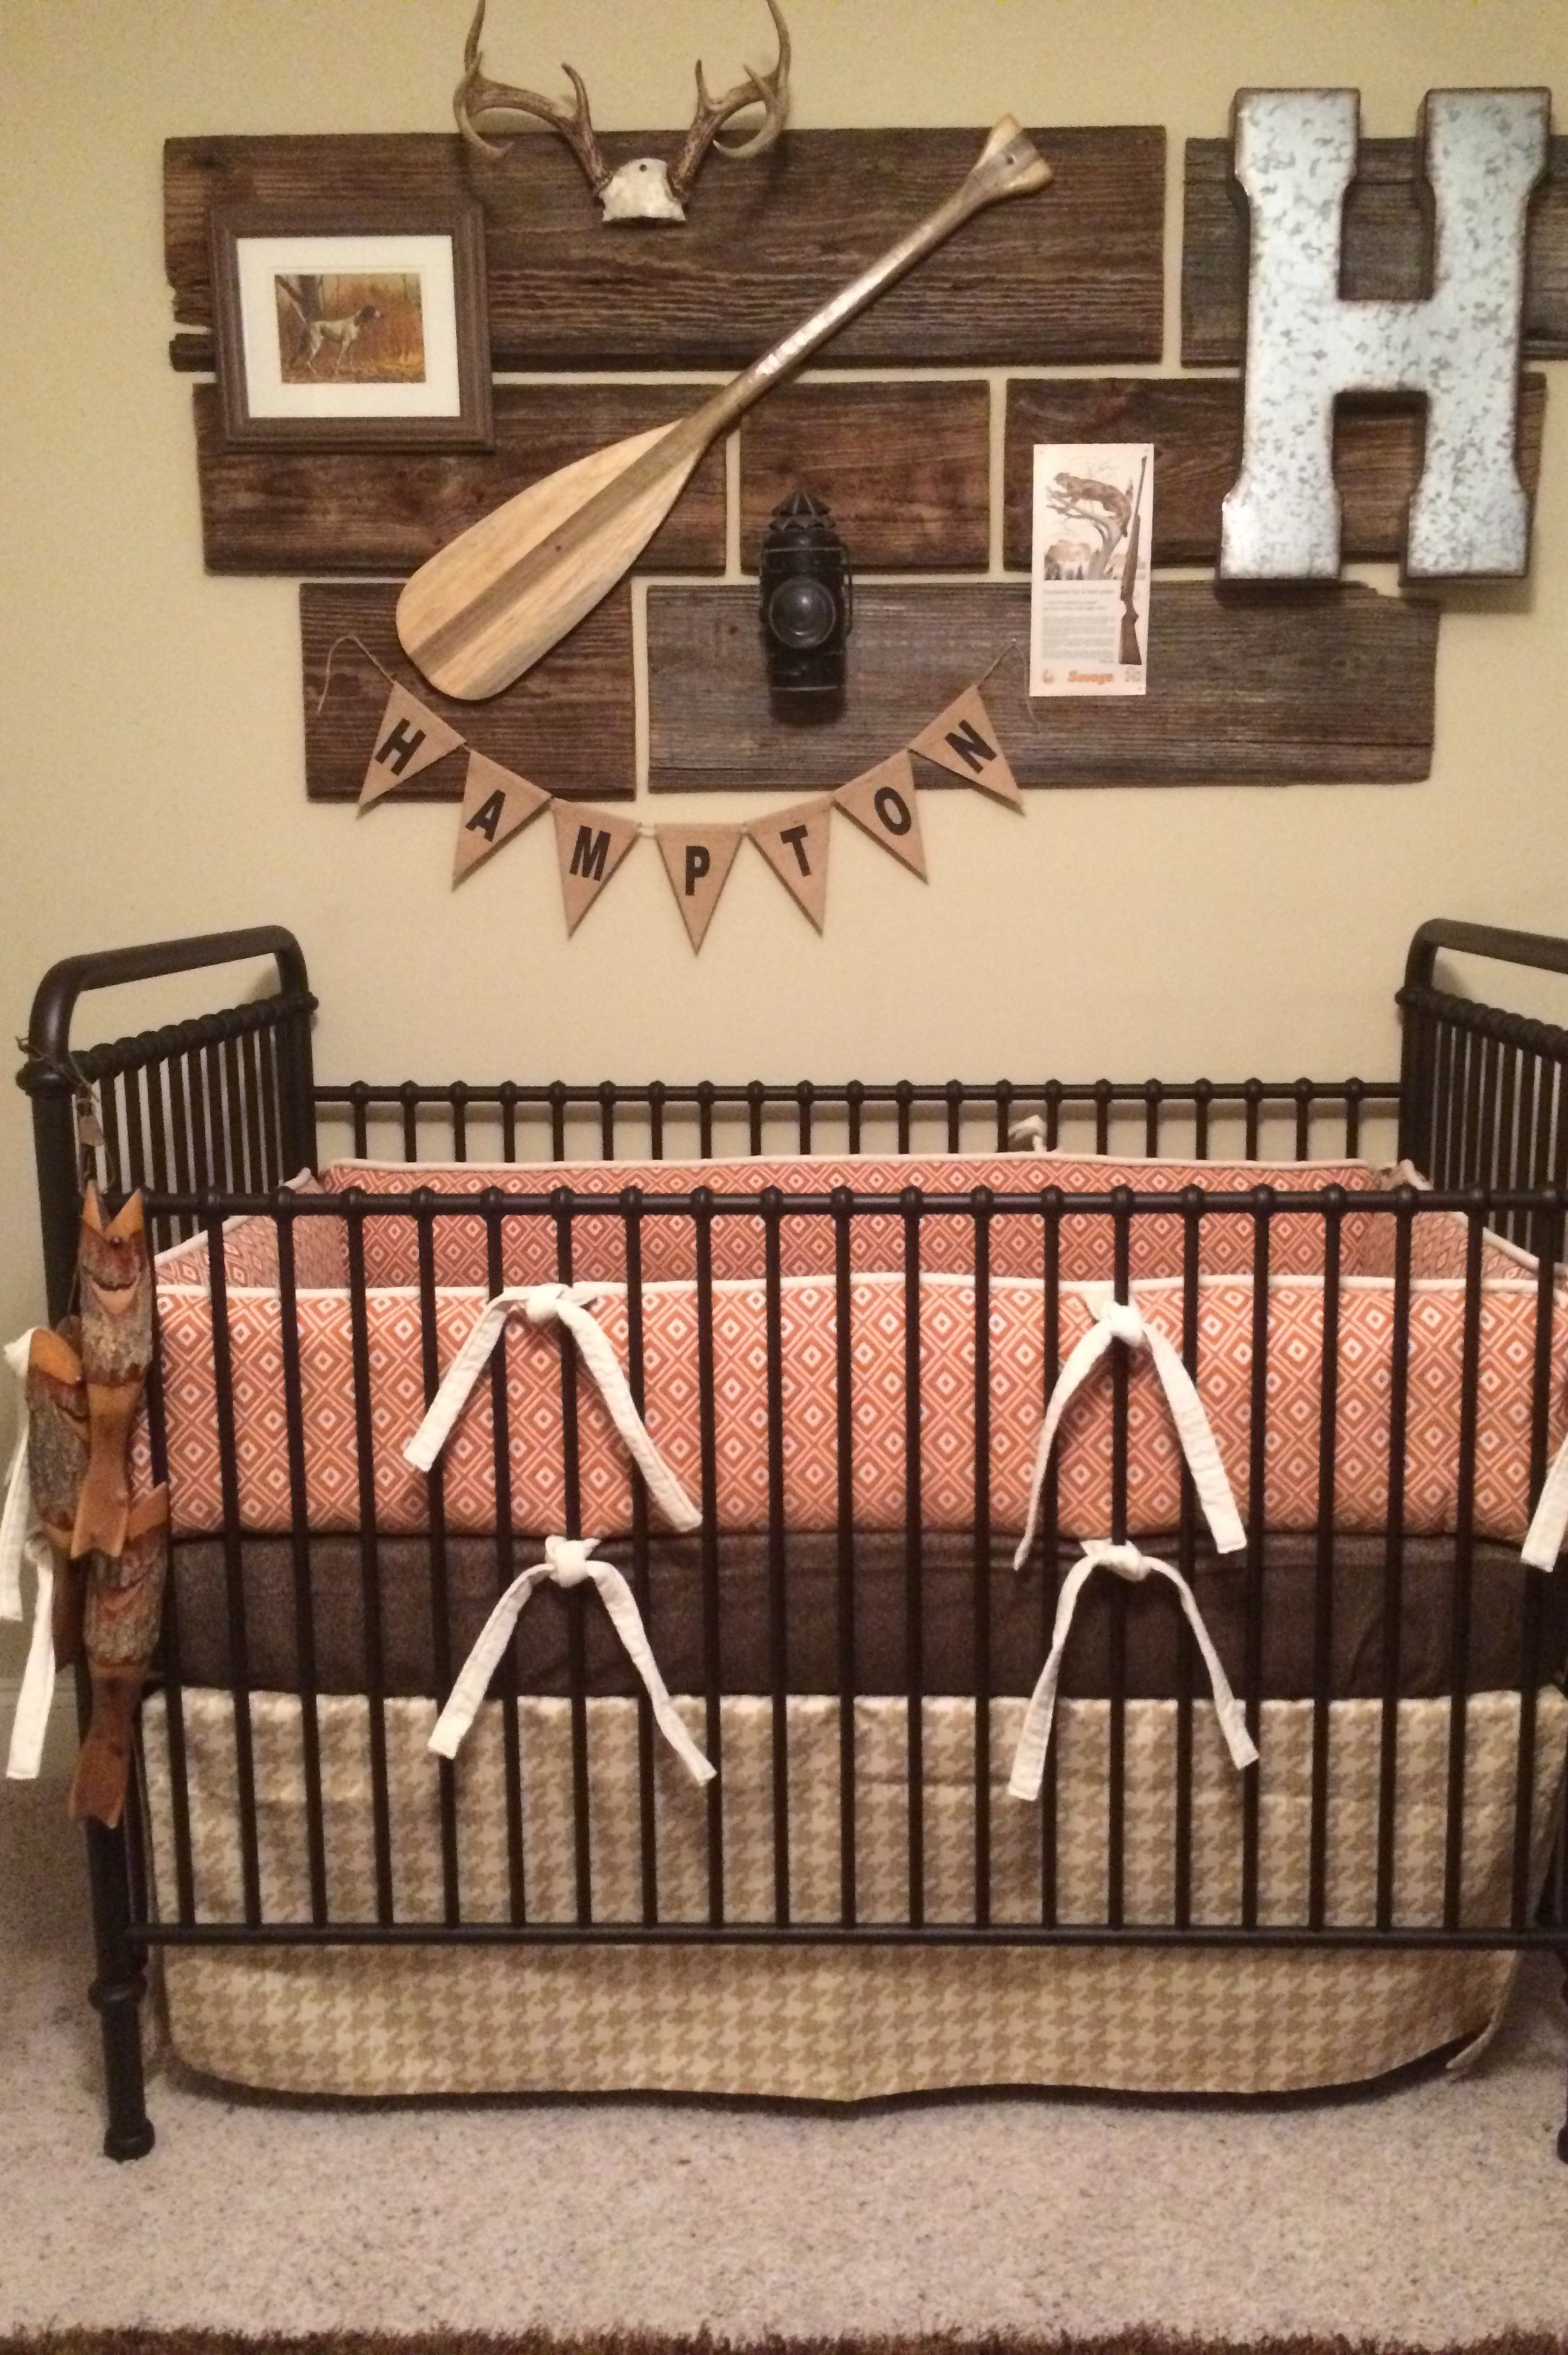 Orange Diamond Crib Bedding In A Rustic Nursery